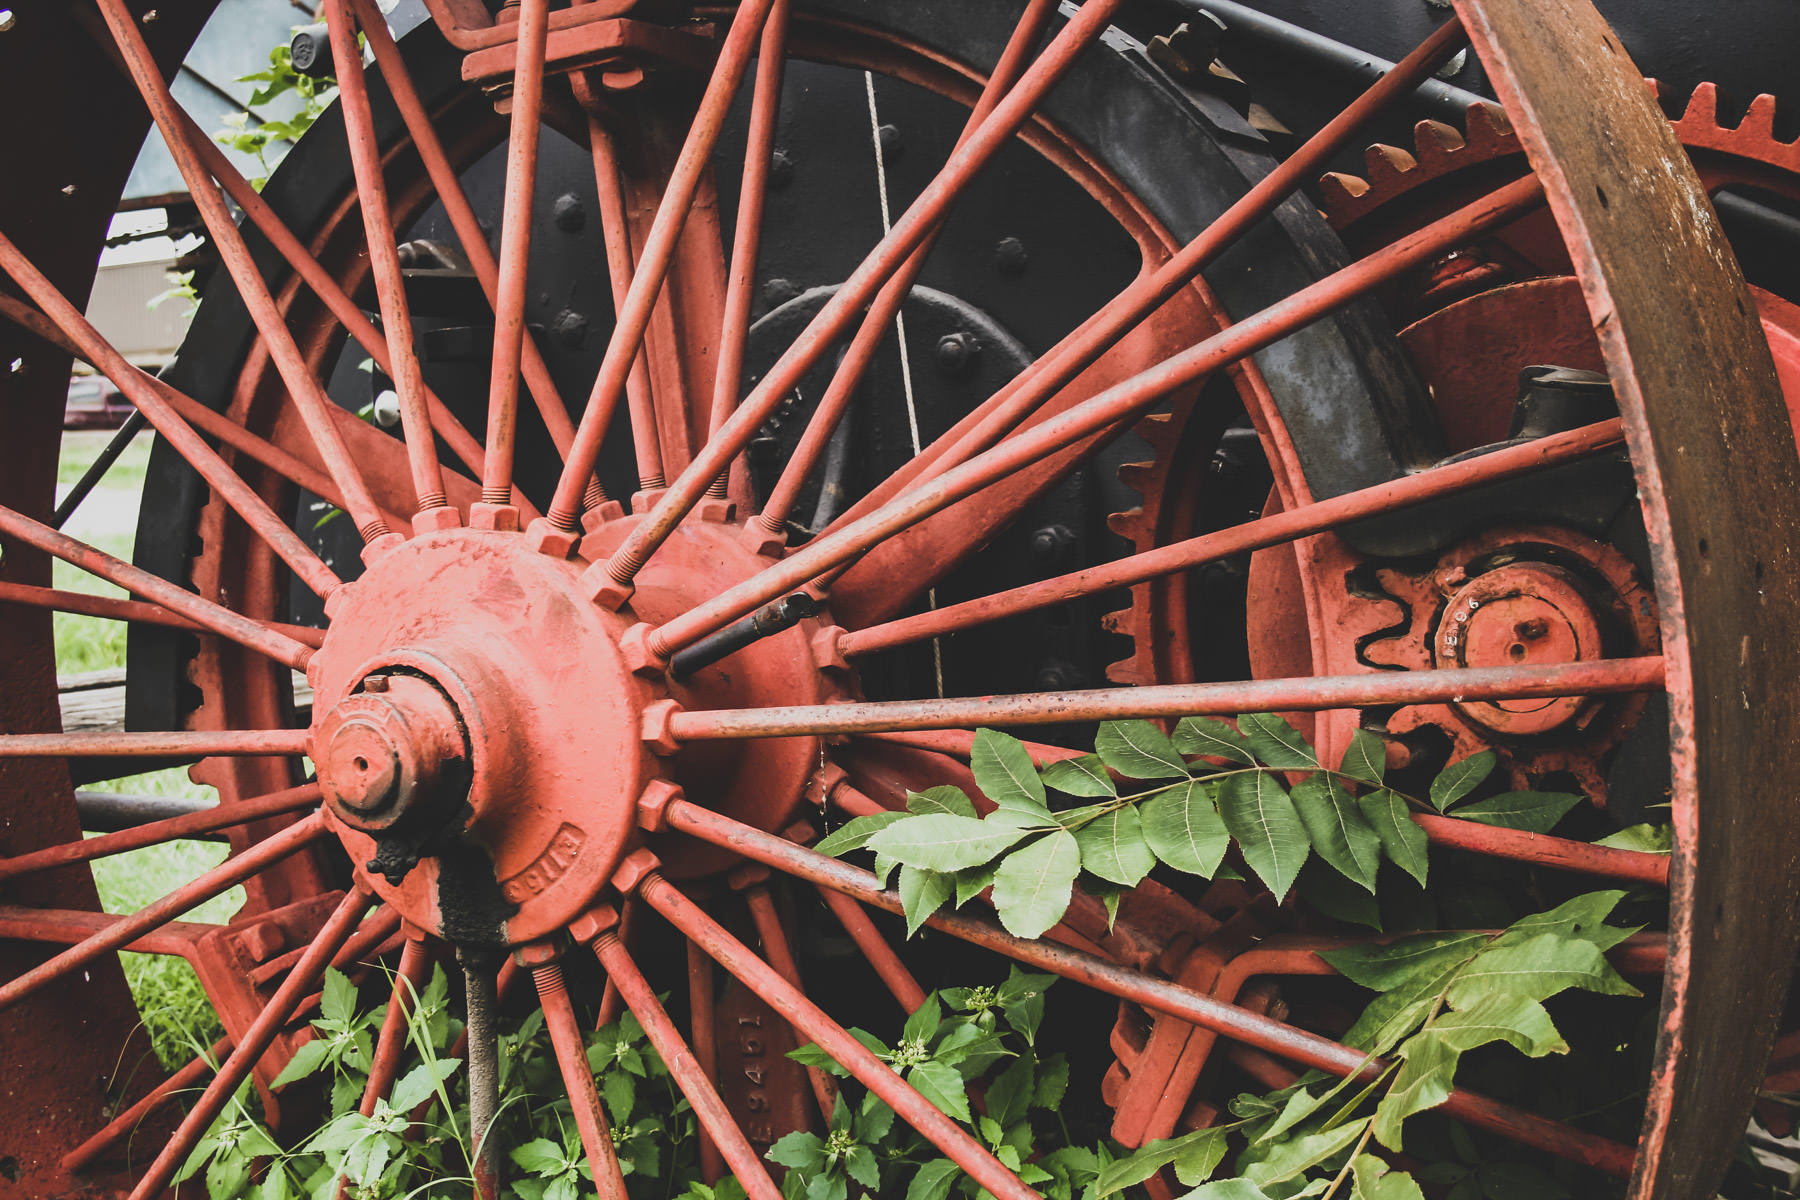 The wheel of an antique tractor found in Marietta, Oklahoma.